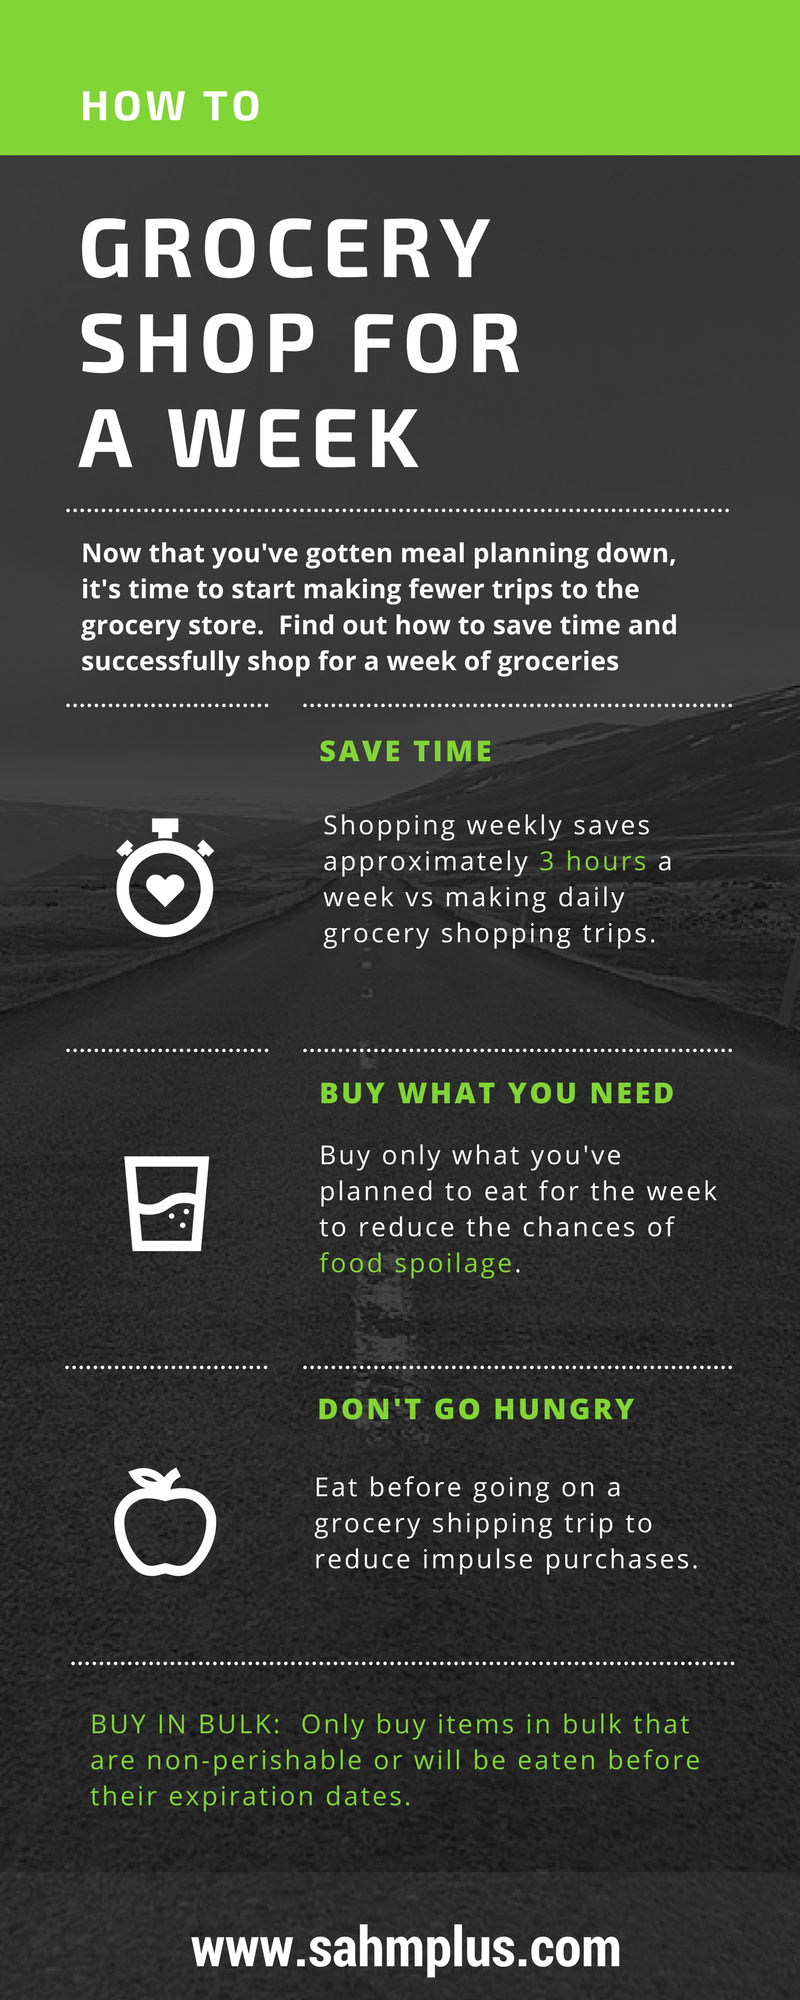 How to grocery shop for a week